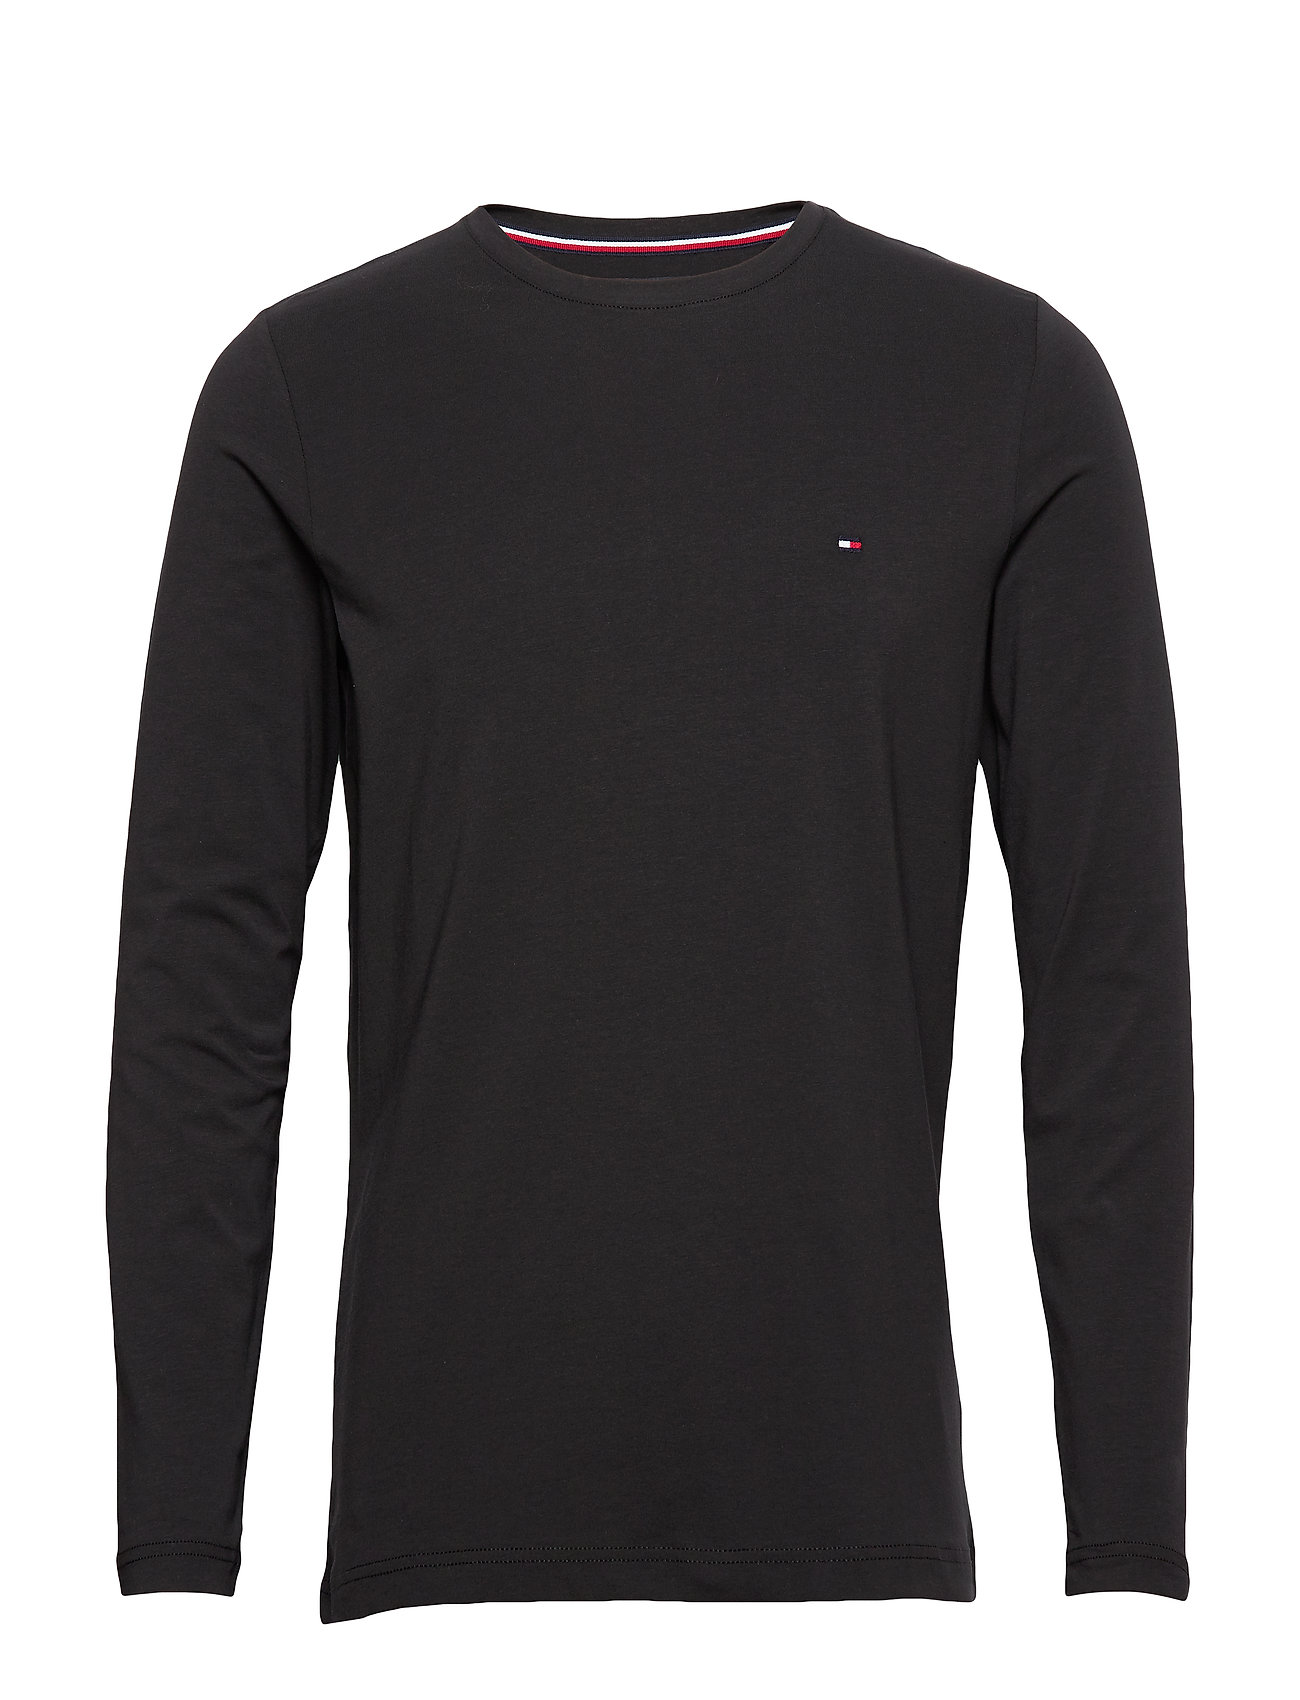 Tommy Hilfiger STRETCH SLIM FIT LON - BLACK